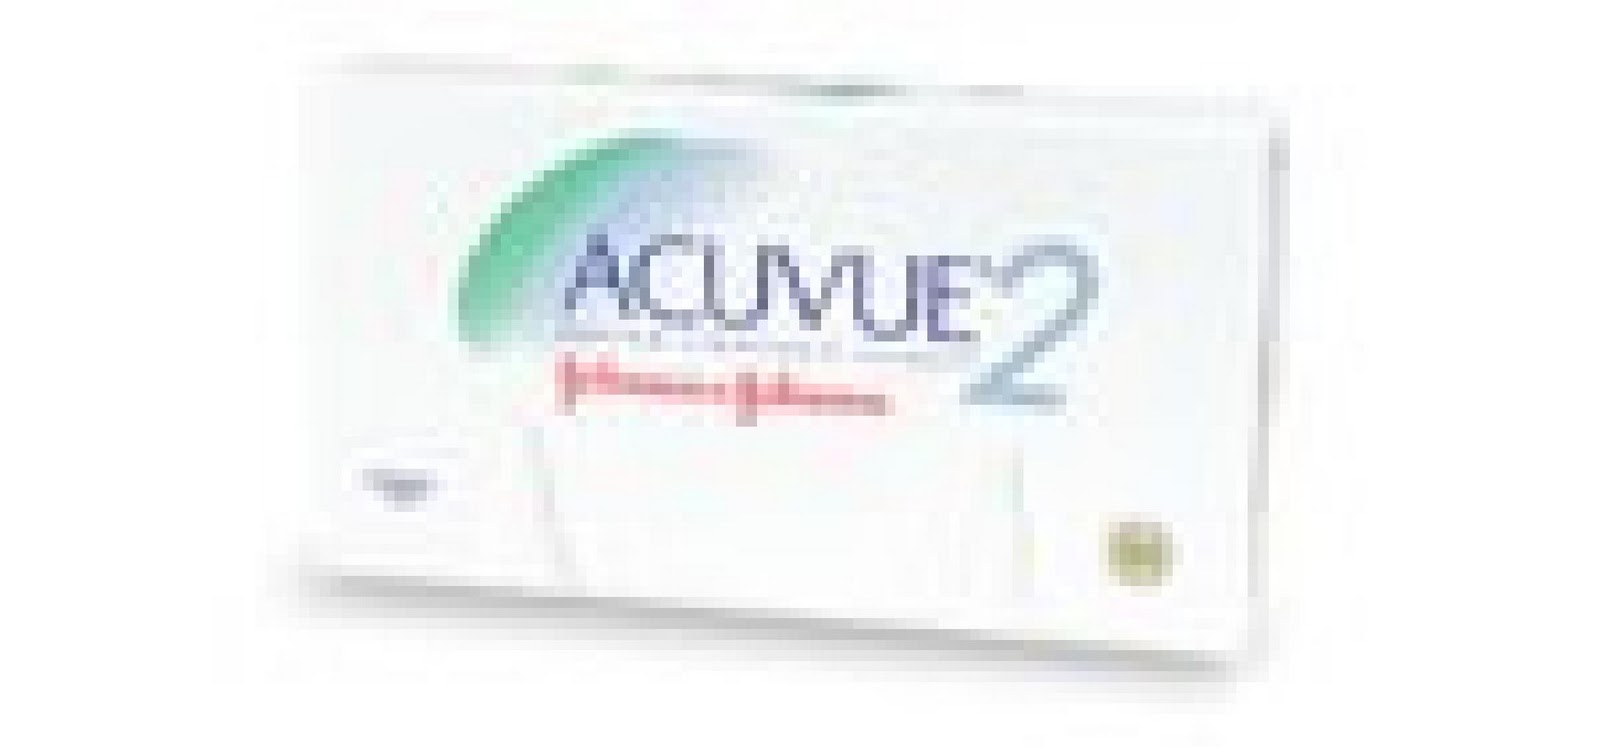 Contact Lens Review Softlens Acuvue 2 Is A Bi Weekly Disposable Lenses This Offers Exceptional Comfort And Easy Maintenance Have High Tech Contour Intelligent Design